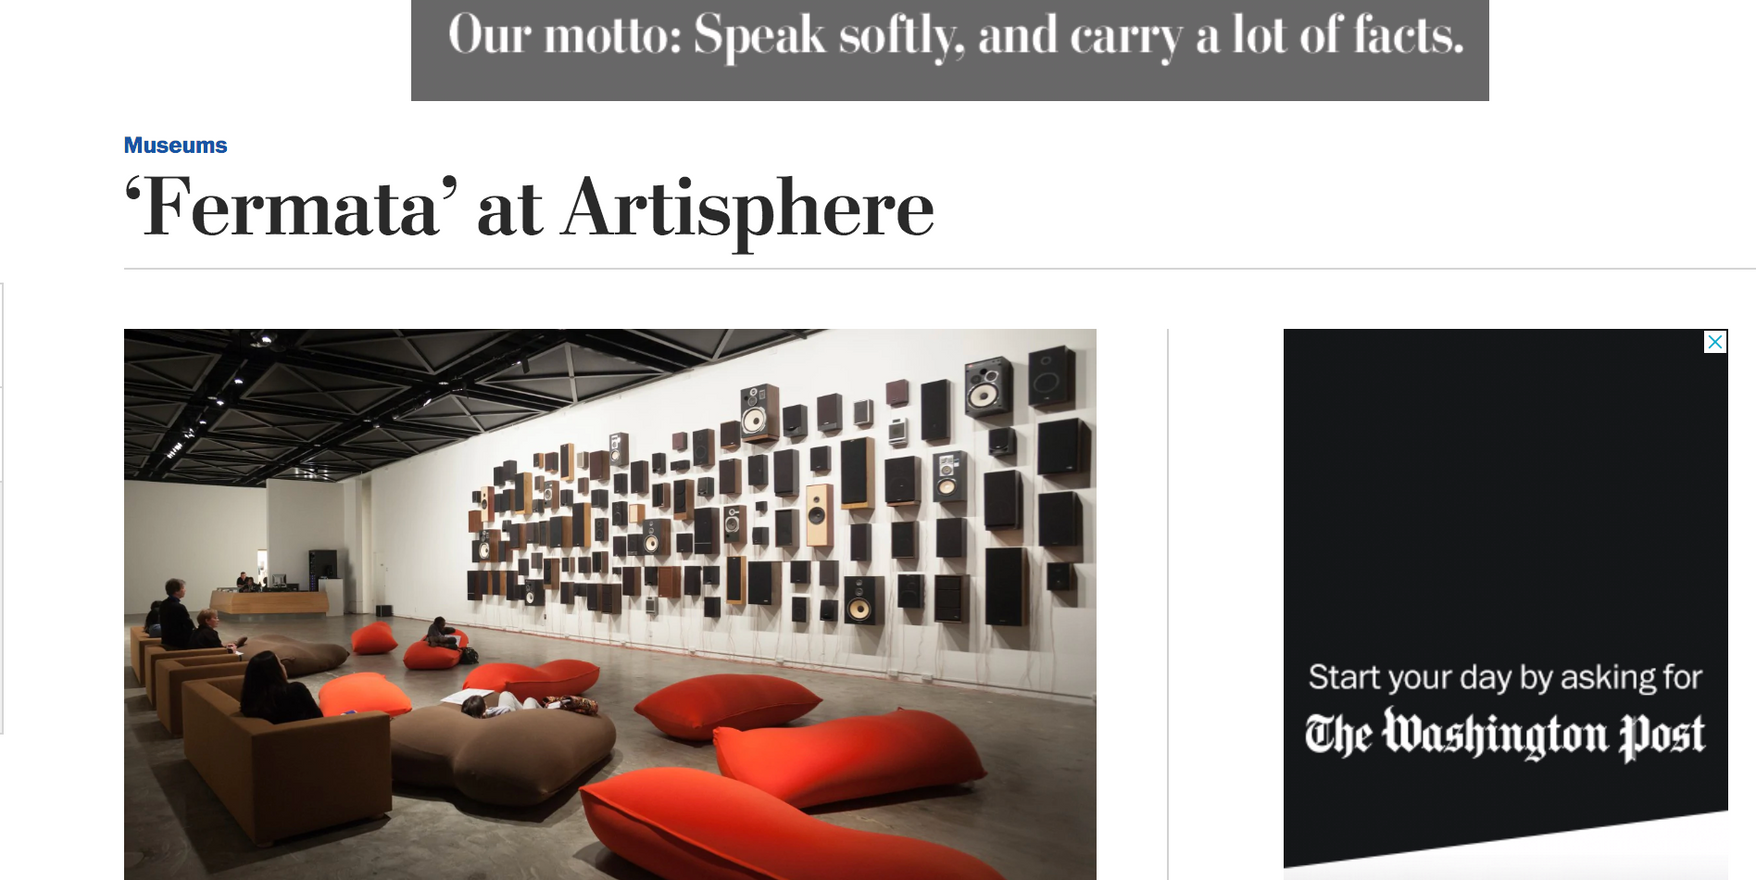 Washinton Post: 'Fermata' at Artisphere